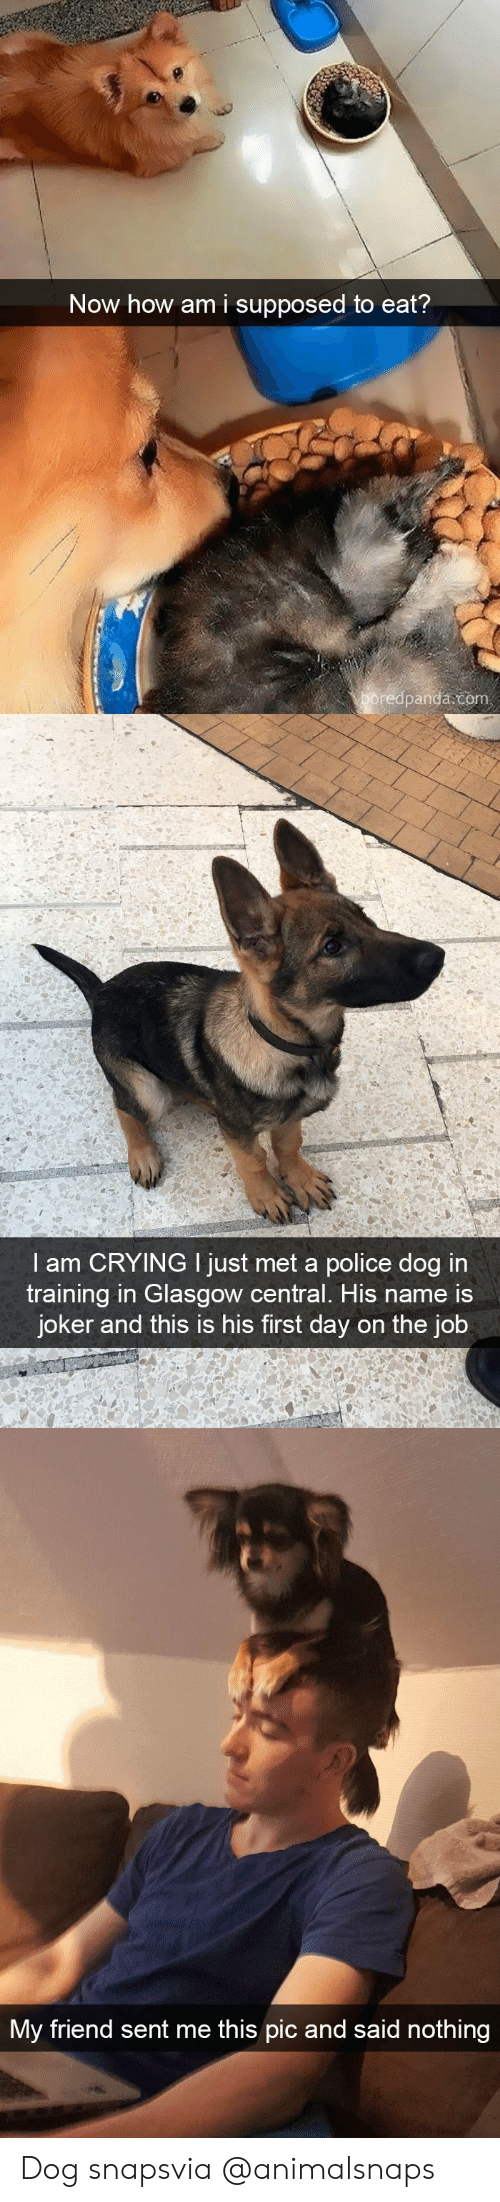 police dog: Now how am i supposed to eat?  boredpanda.com   I am CRYING I just met a police dog i  training in Glasgow central. His name is  joker and this is his first day on the job   My friend sent me this pic and said  IC  nothing Dog snapsvia @animalsnaps